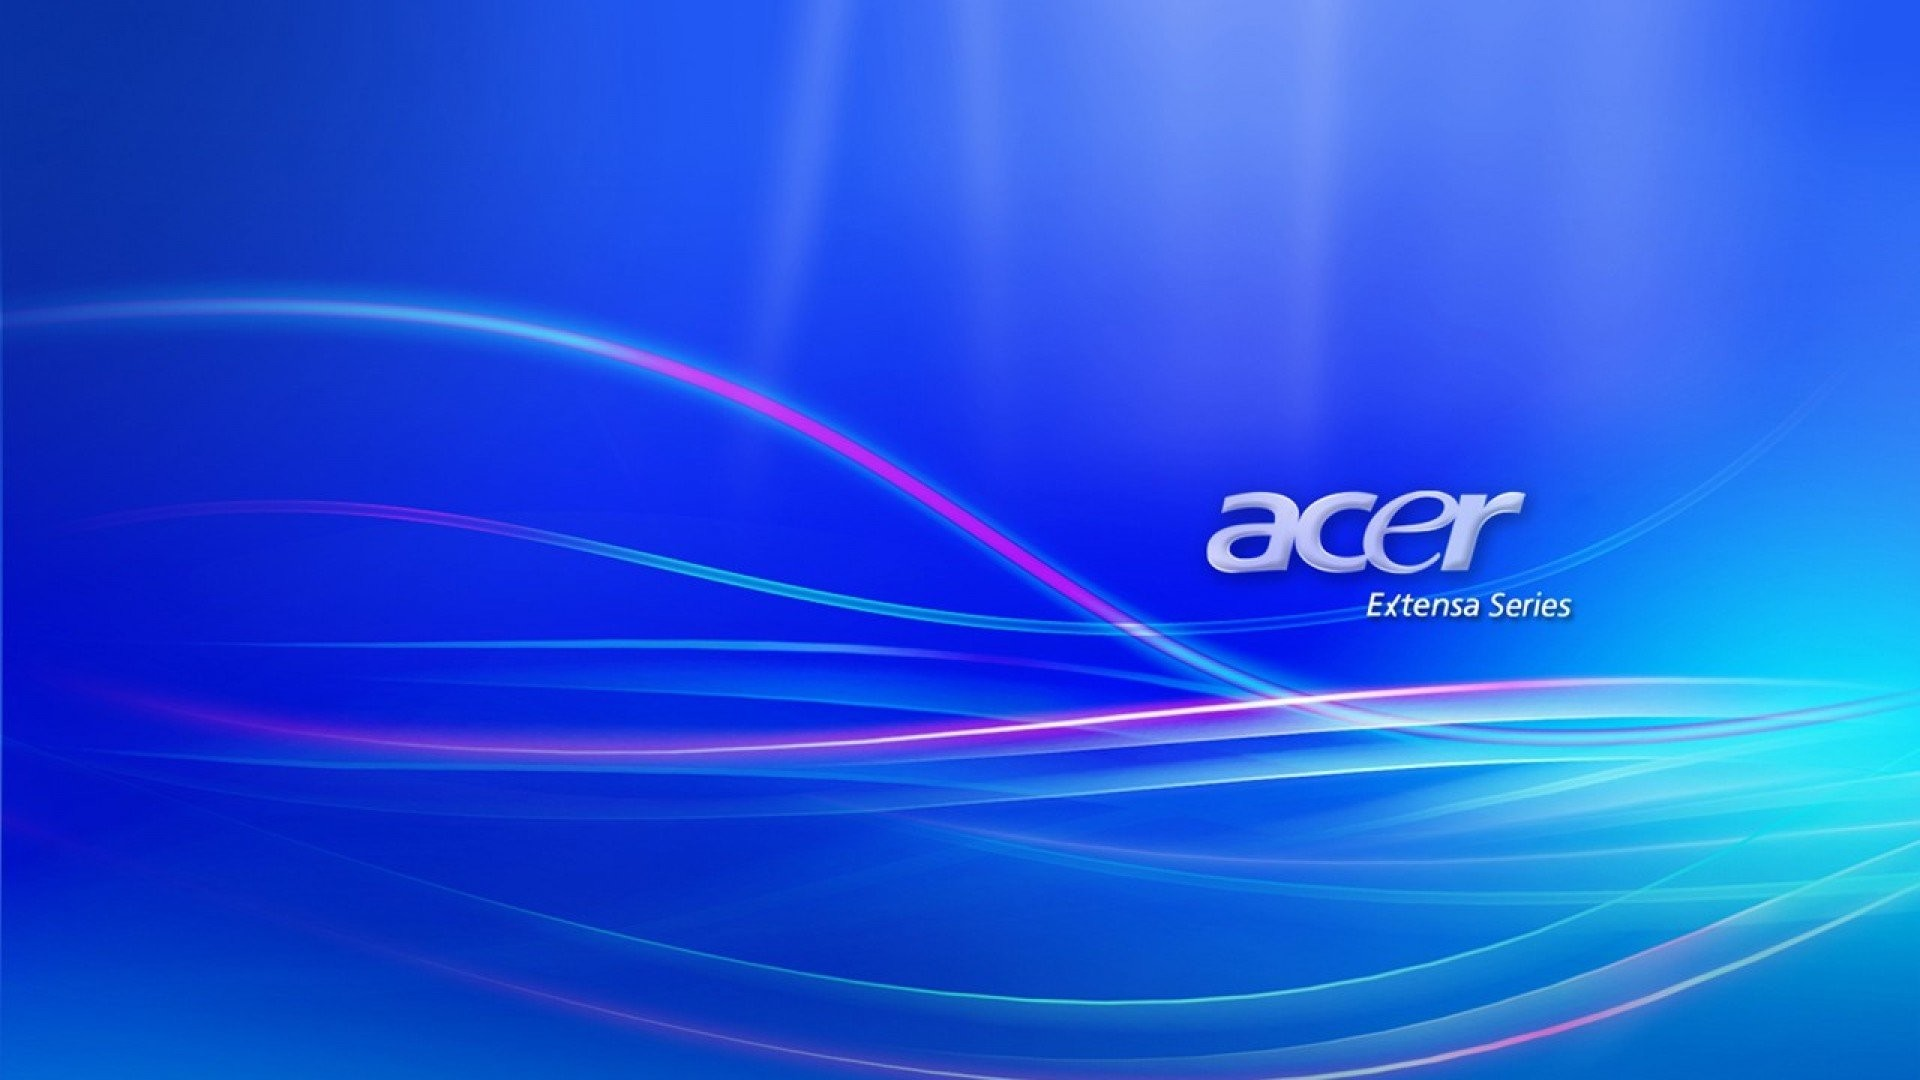 1920x1080 original acer wallpapers for - photo #11